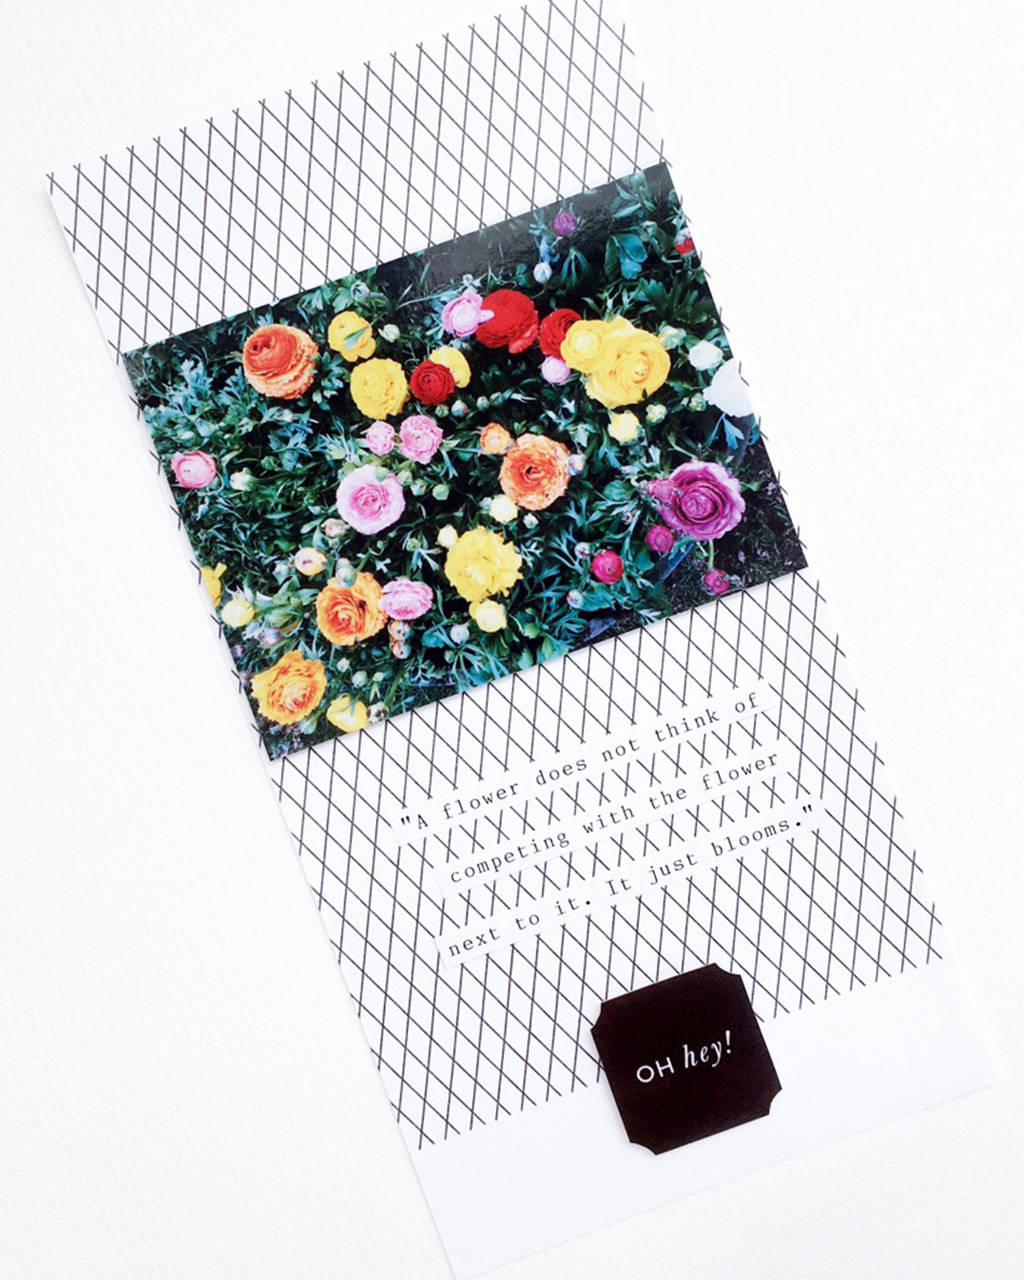 5 trends in scrapbooking right now